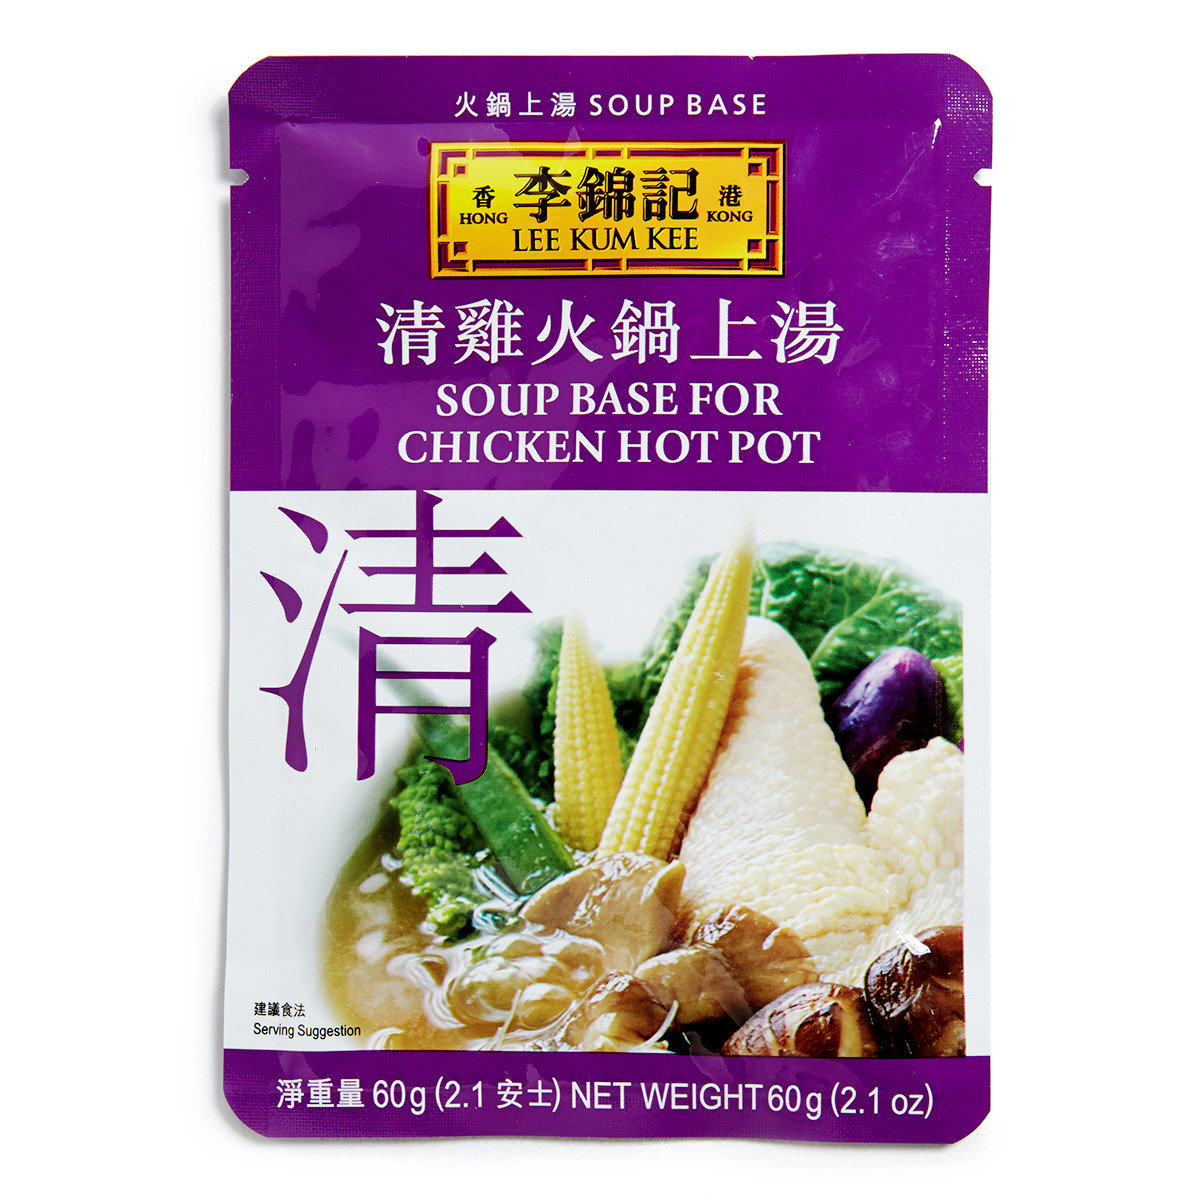 Soup Base for Chicken Hot Pot